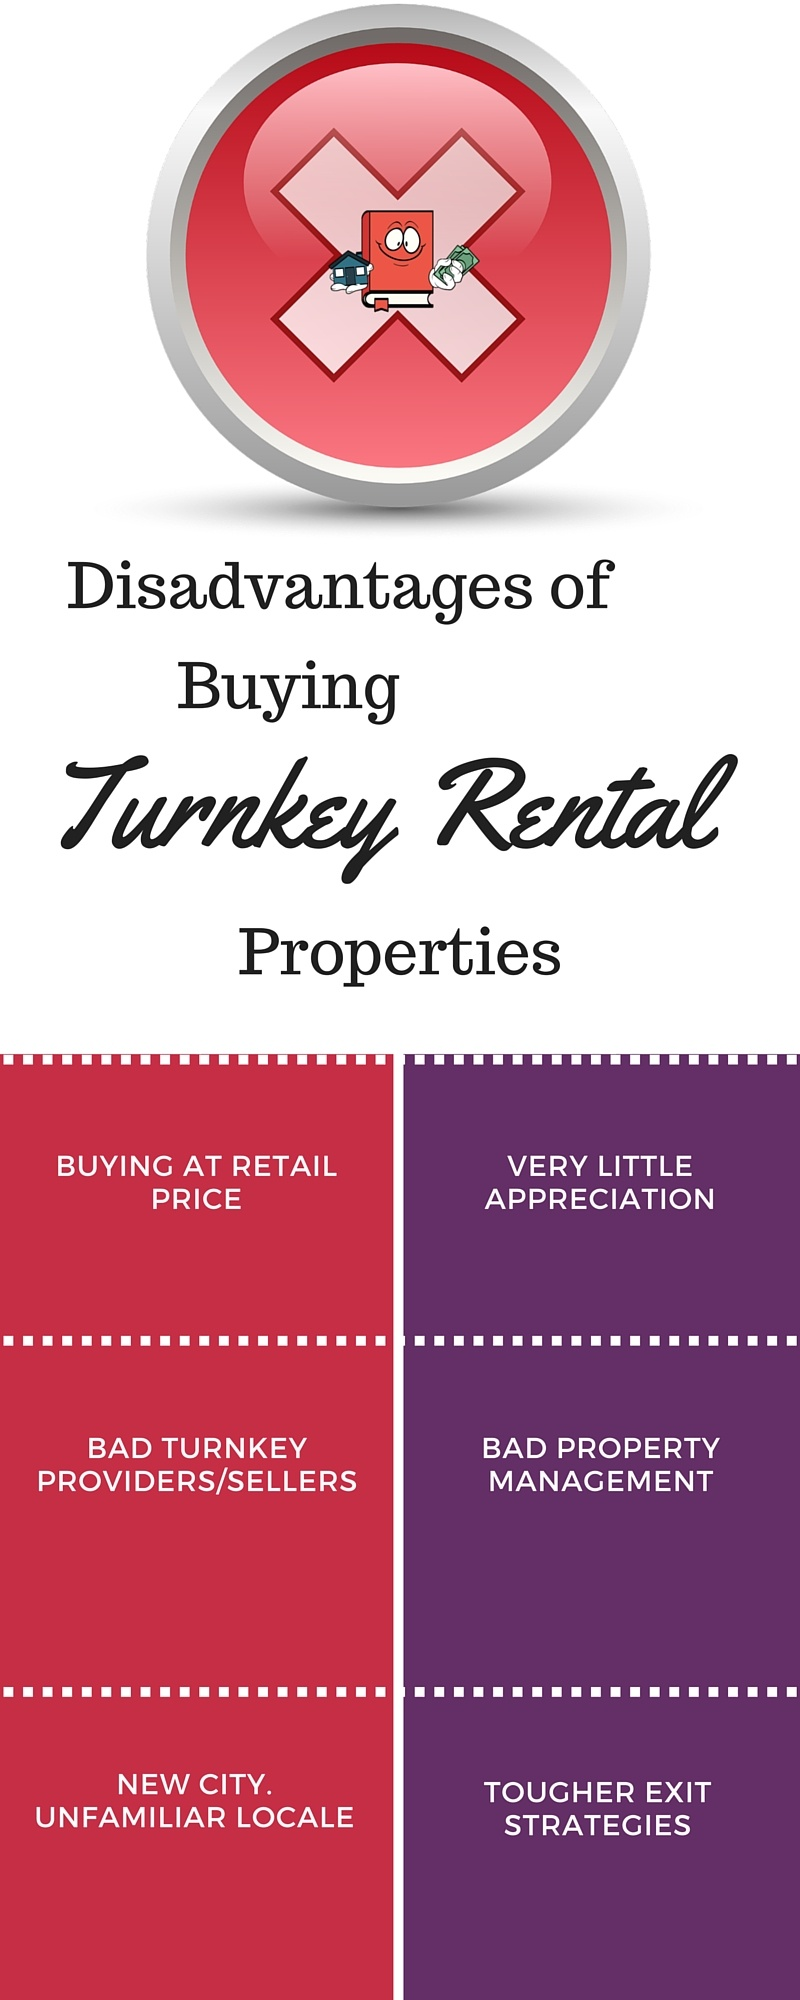 DISADVANTAGES OF BUYING TURNKEY RENTALS - infographic